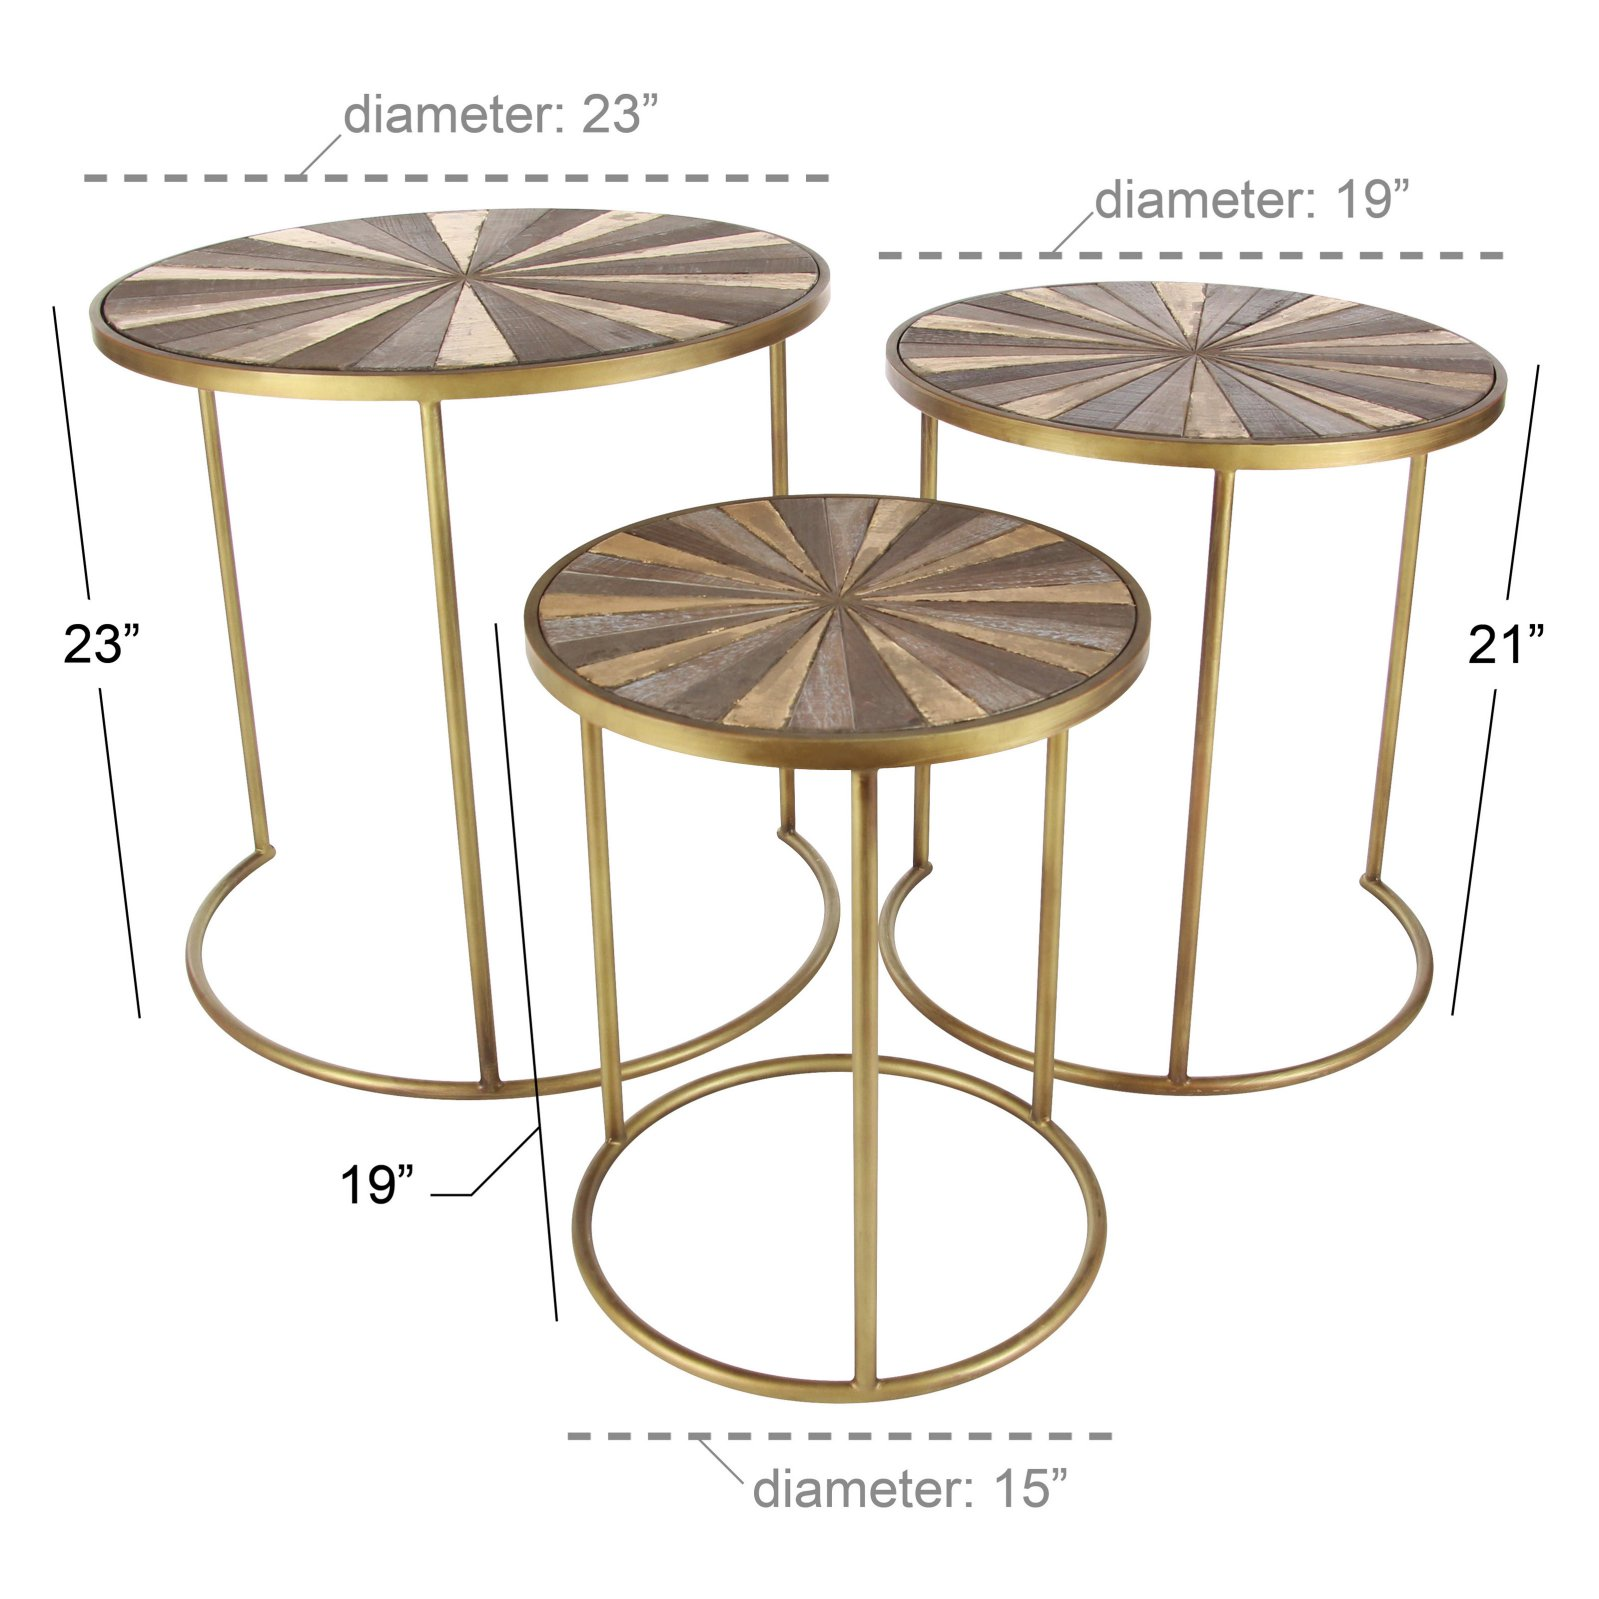 decmode round metal and wood accent tables set table sofa edmonton meyda tiffany lamp bases contemporary coffee end astoria dining uttermost console black glass side wrought iron